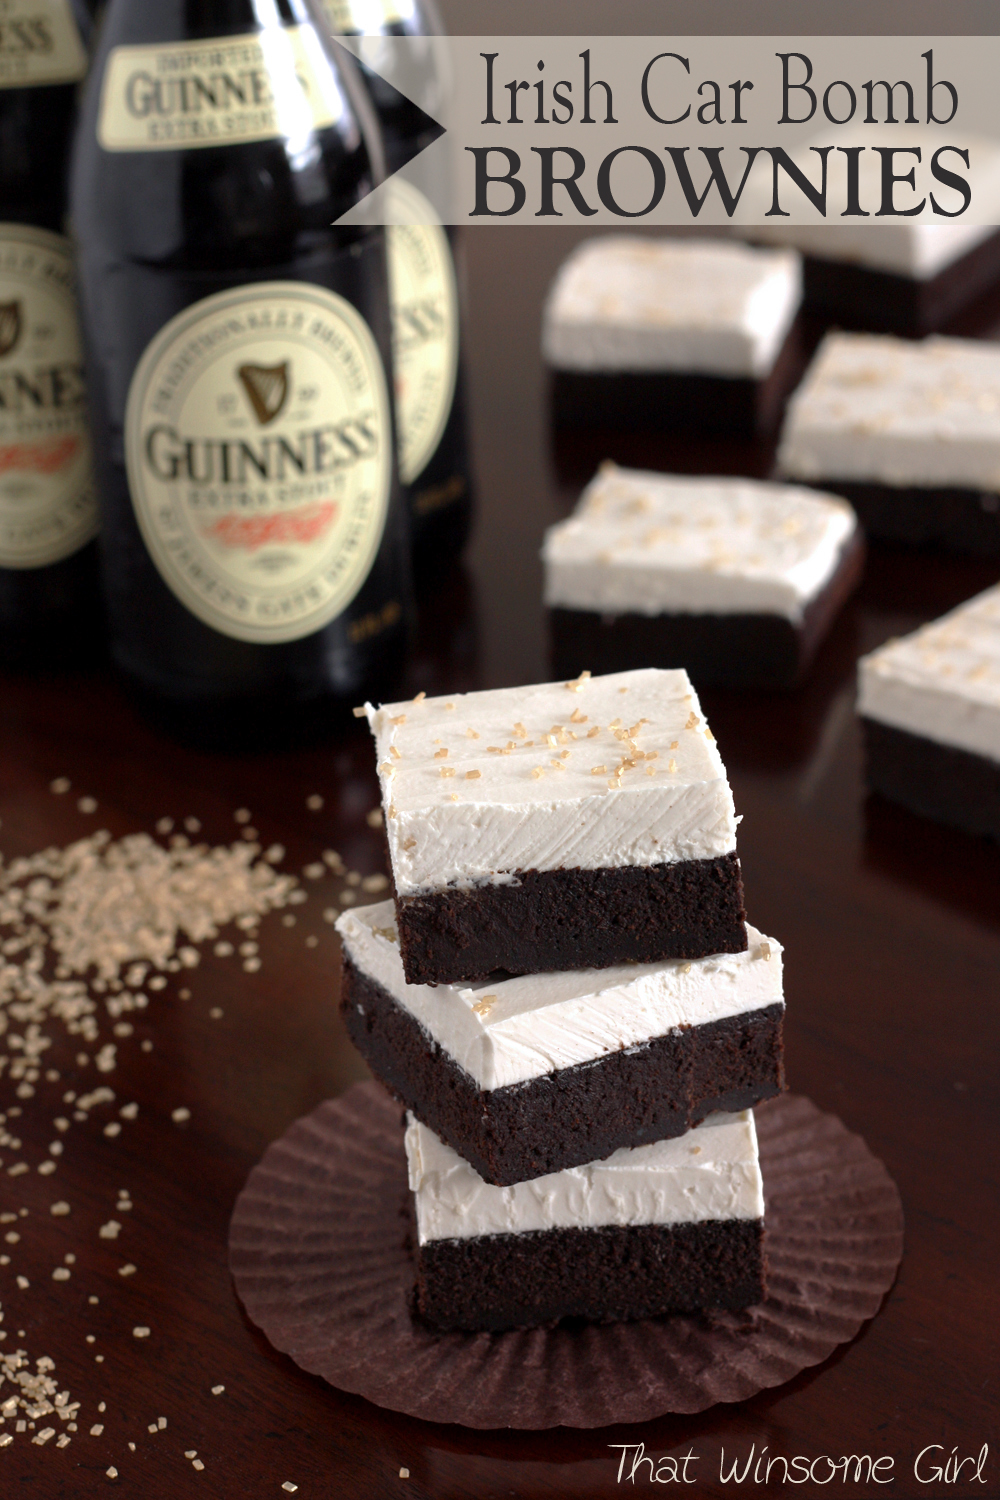 That Winsome Girl: Irish Car Bomb Brownies